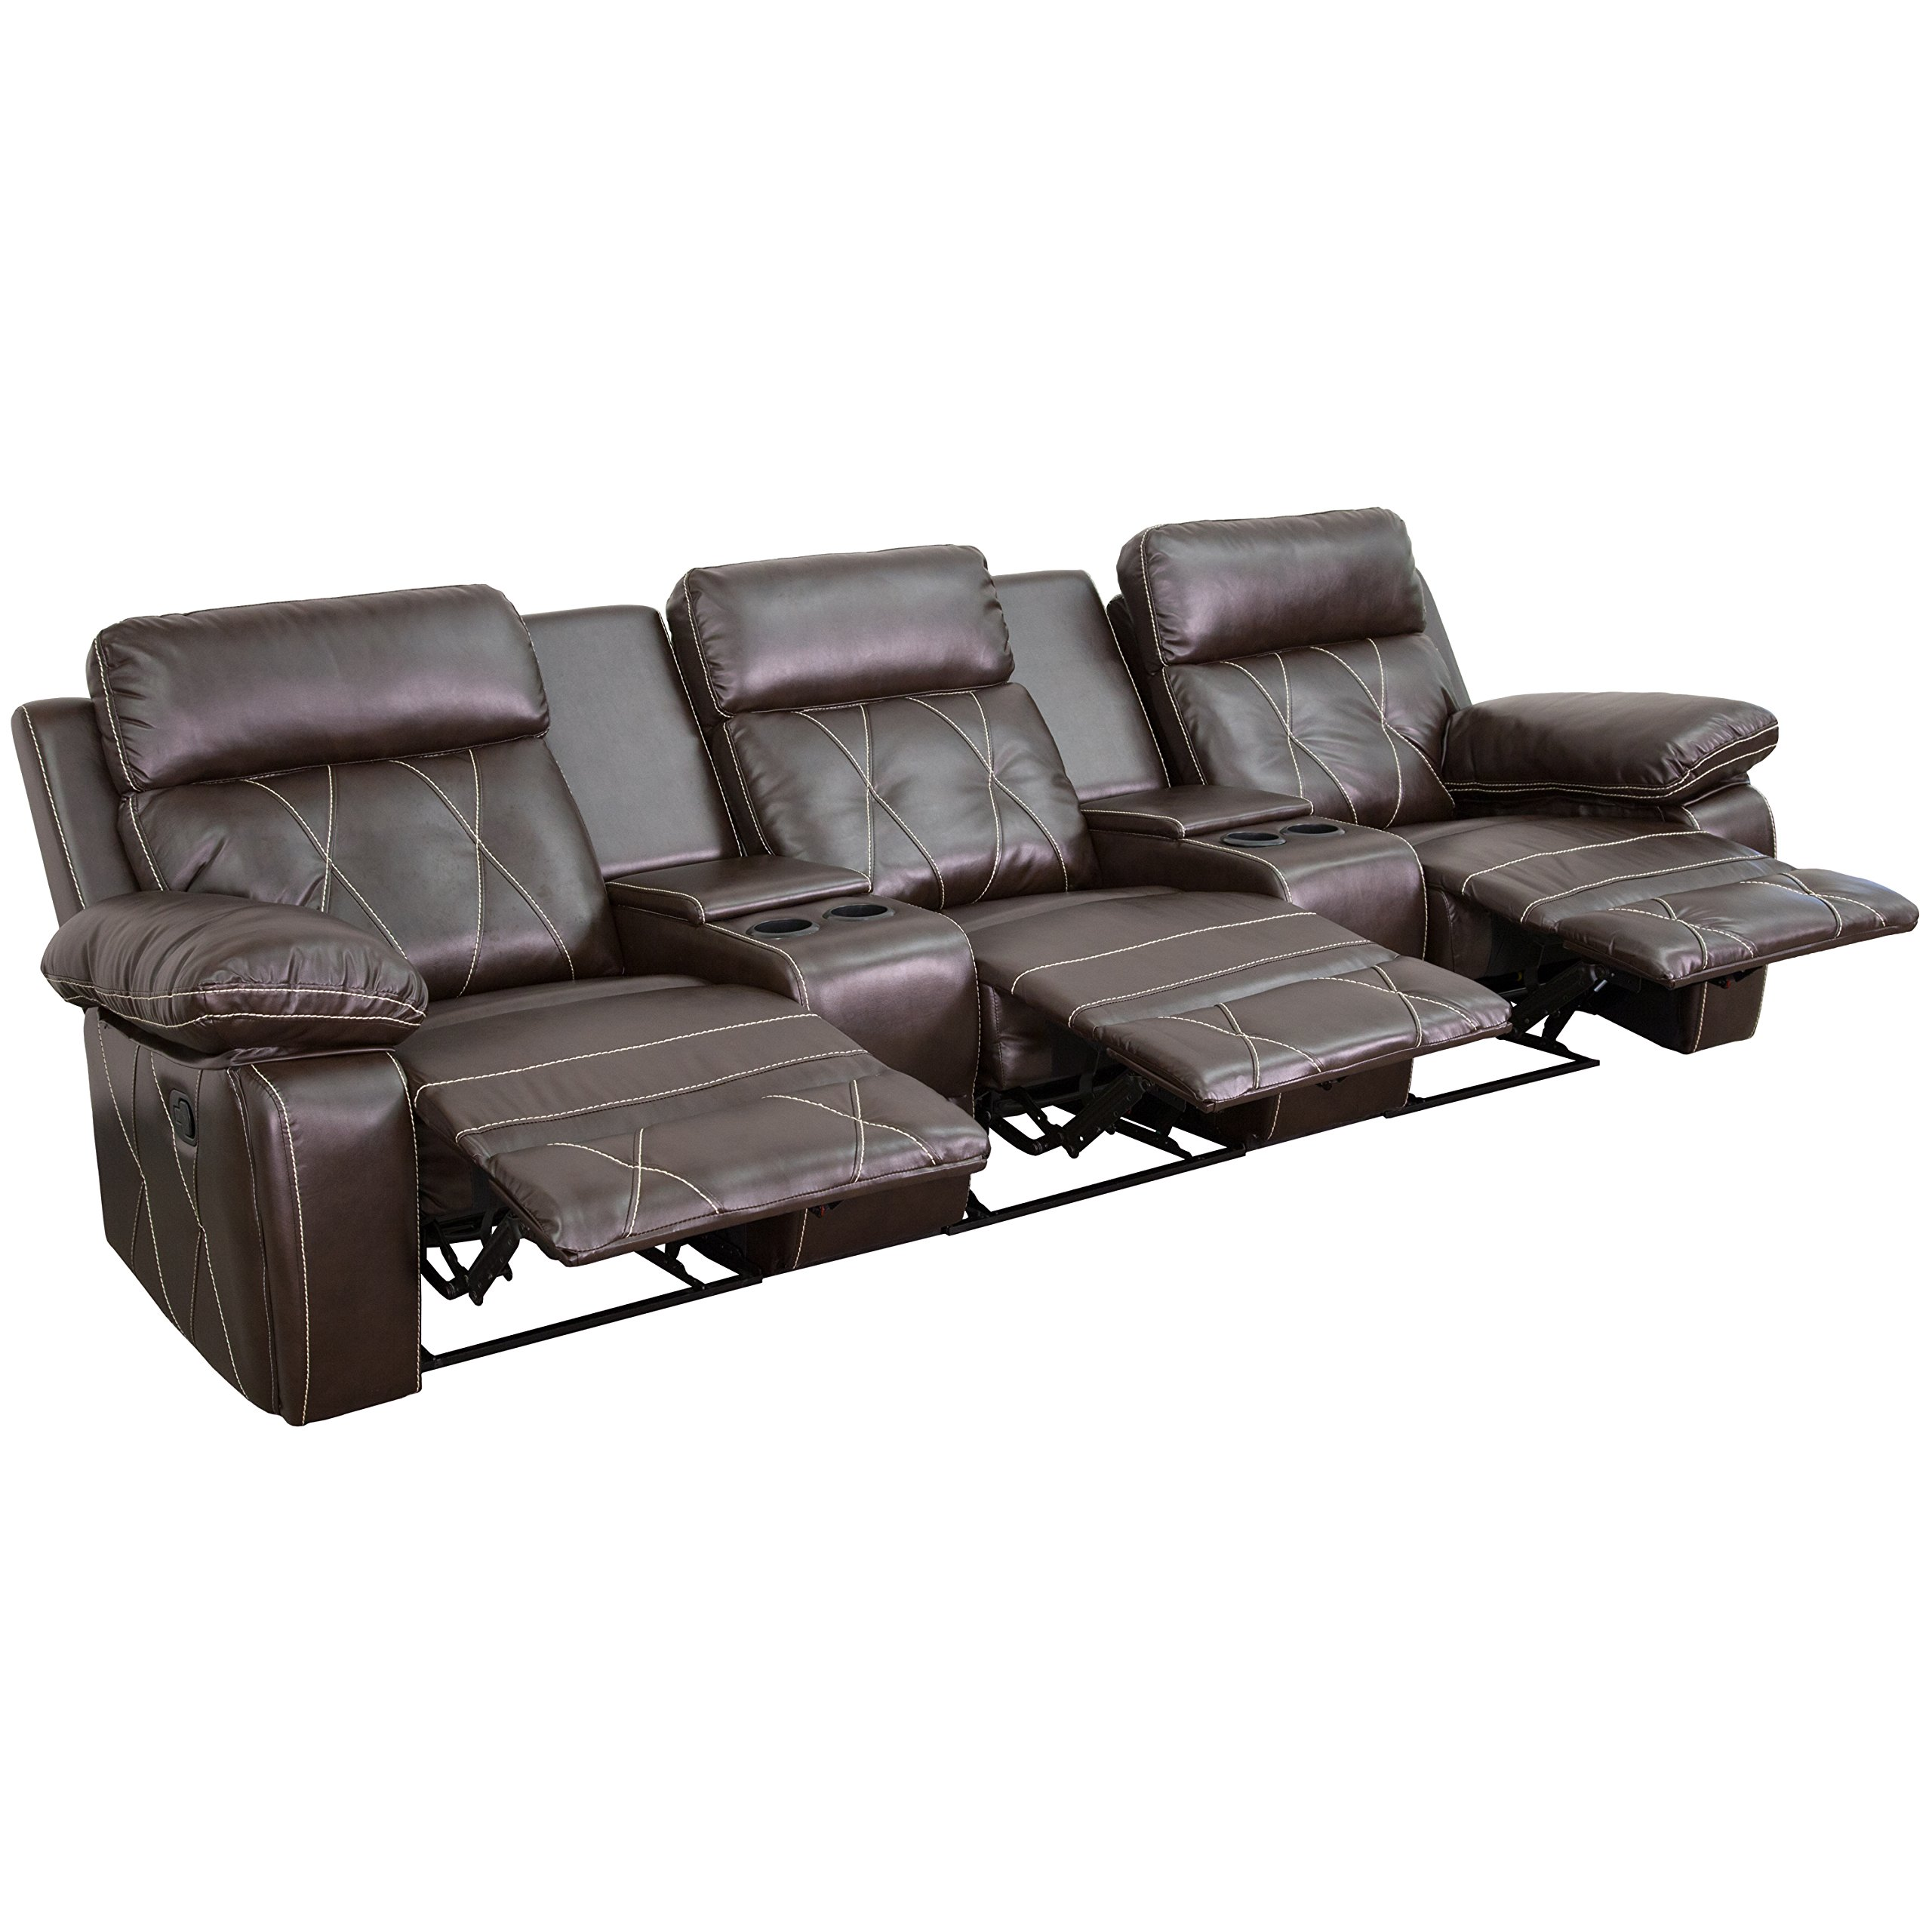 Flash Furniture Reel Comfort Series 3-Seat Reclining Brown Leather Theater Seating Unit with Straight Cup Holders by Flash Furniture